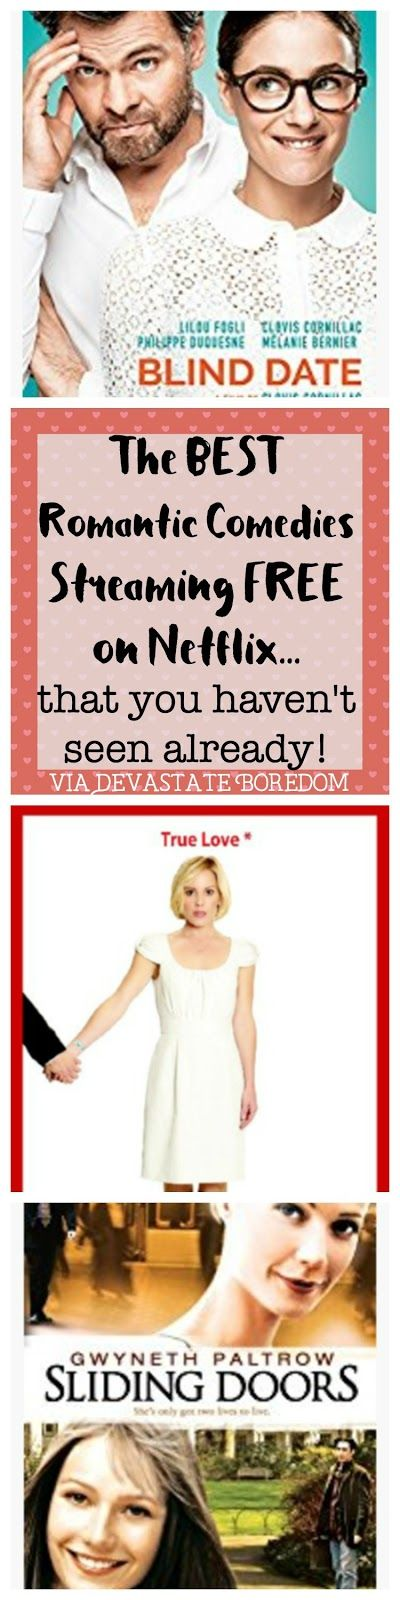 Going to have to remember these movies! -- What to Watch and What NOT to Watch -- movie reviews of romantic comedies streaming free on Netflix!  Sweet, funny clever and thoughtful rom coms you haven't seen already -- something new to stream online!  Great movies, and a terrible one too, review of Blind Date, Timer, Sliding Doors, and Cafe Society, via Devastate Boredom